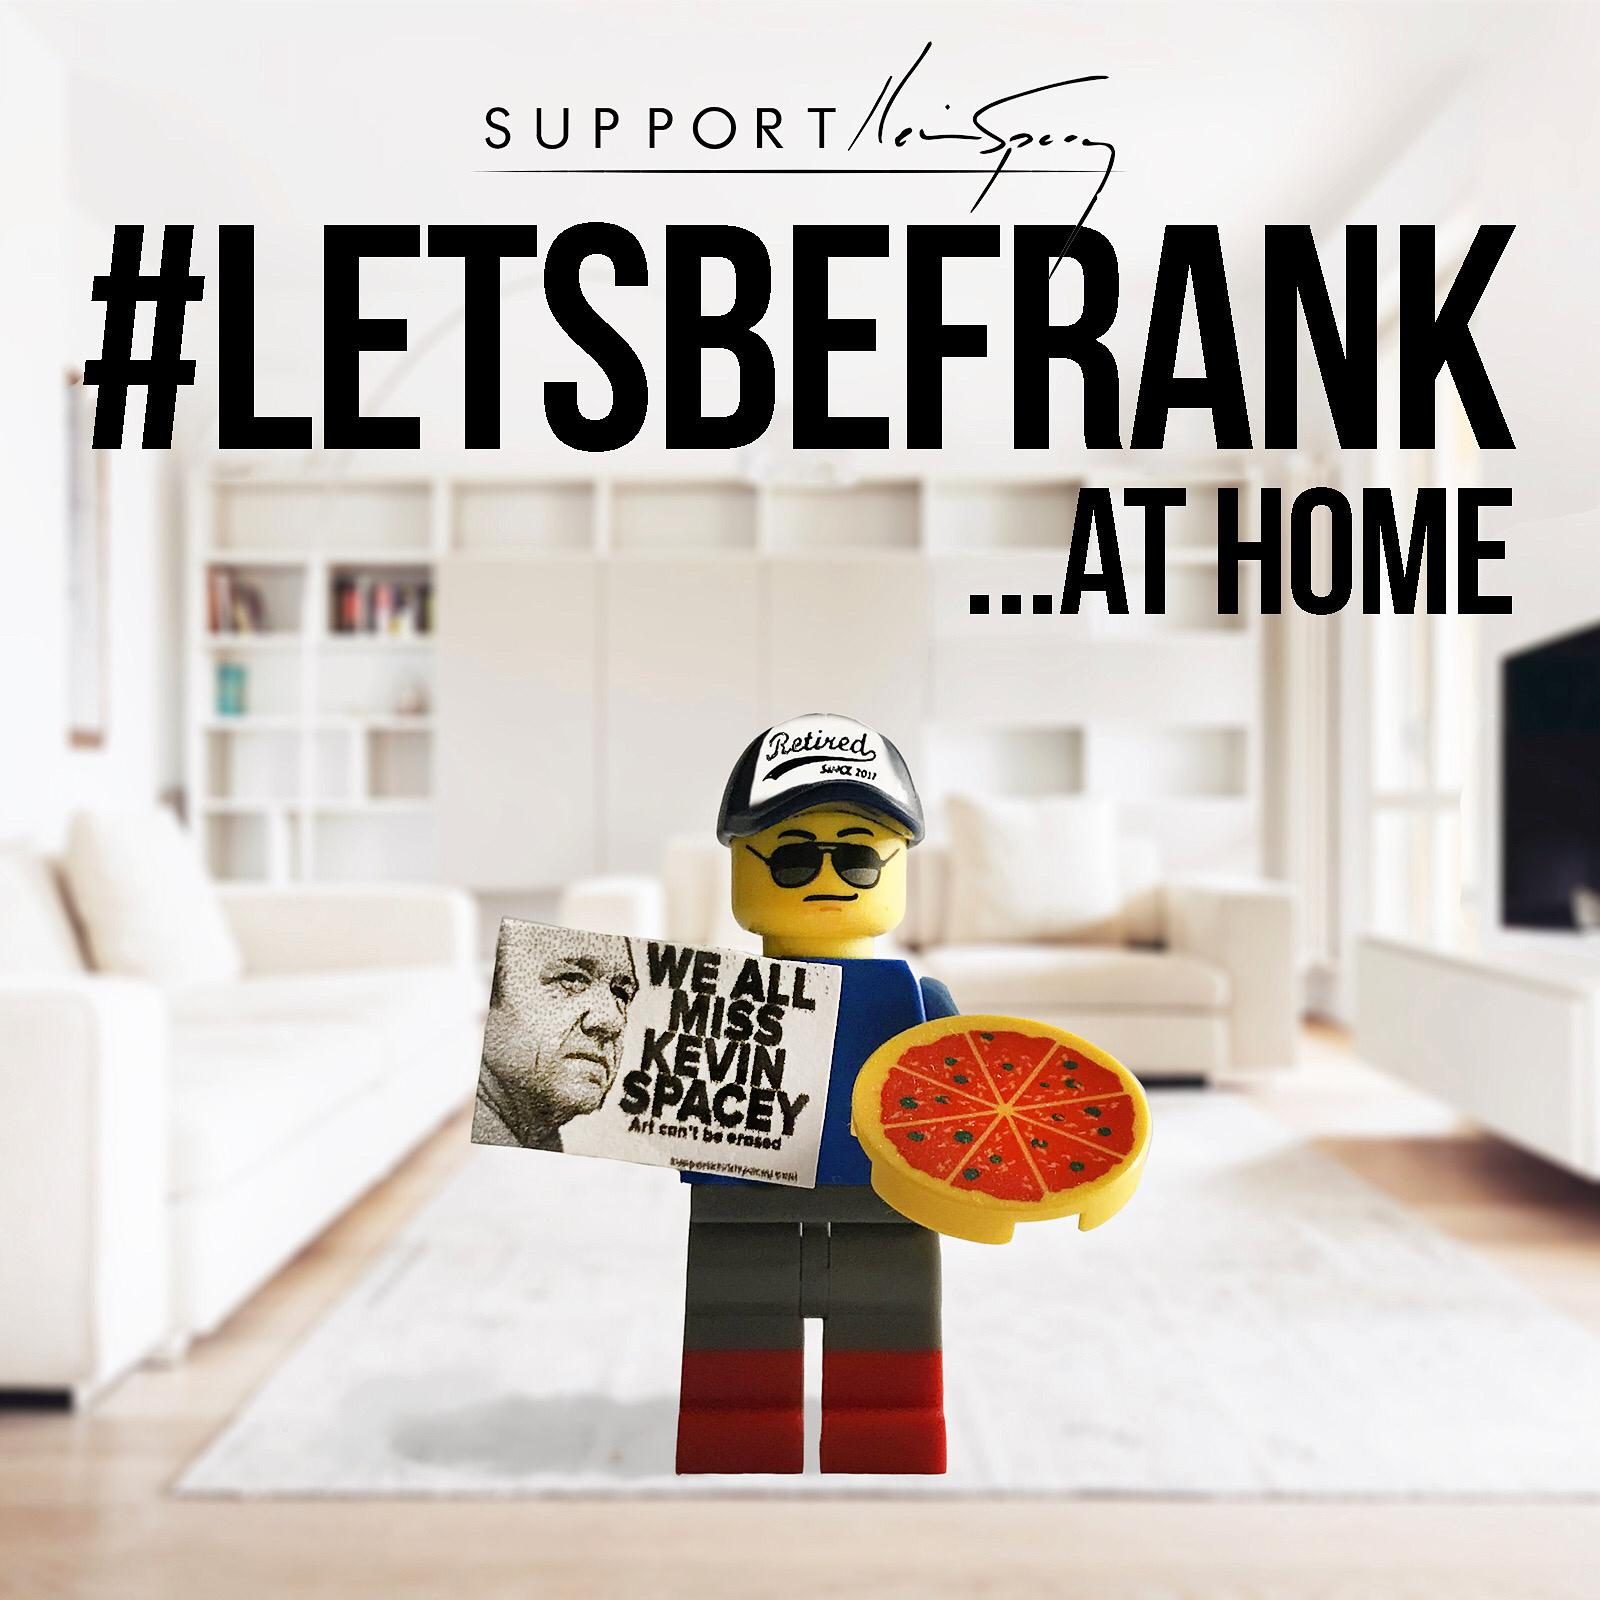 #letsbefrank... at home